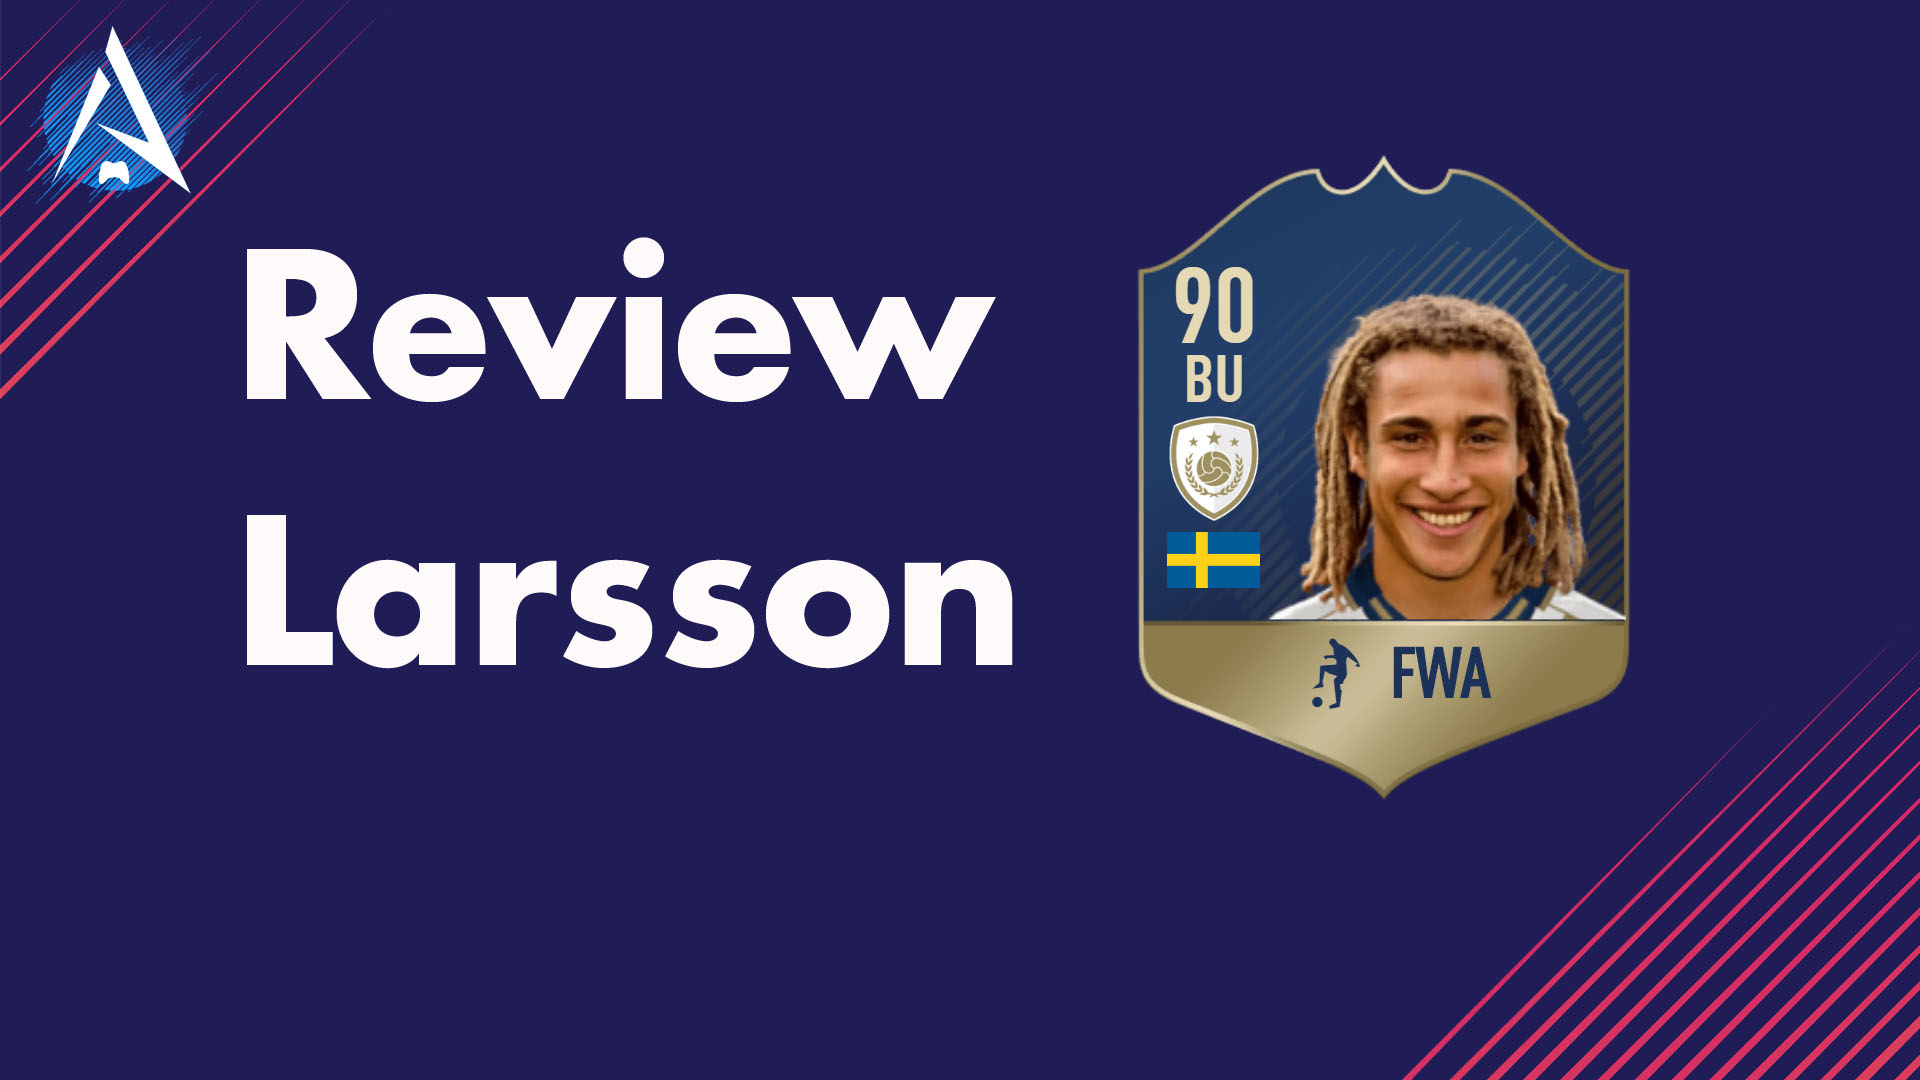 Fut 18 review henrik larsson 90 fut with apero for Deco 90 fut 18